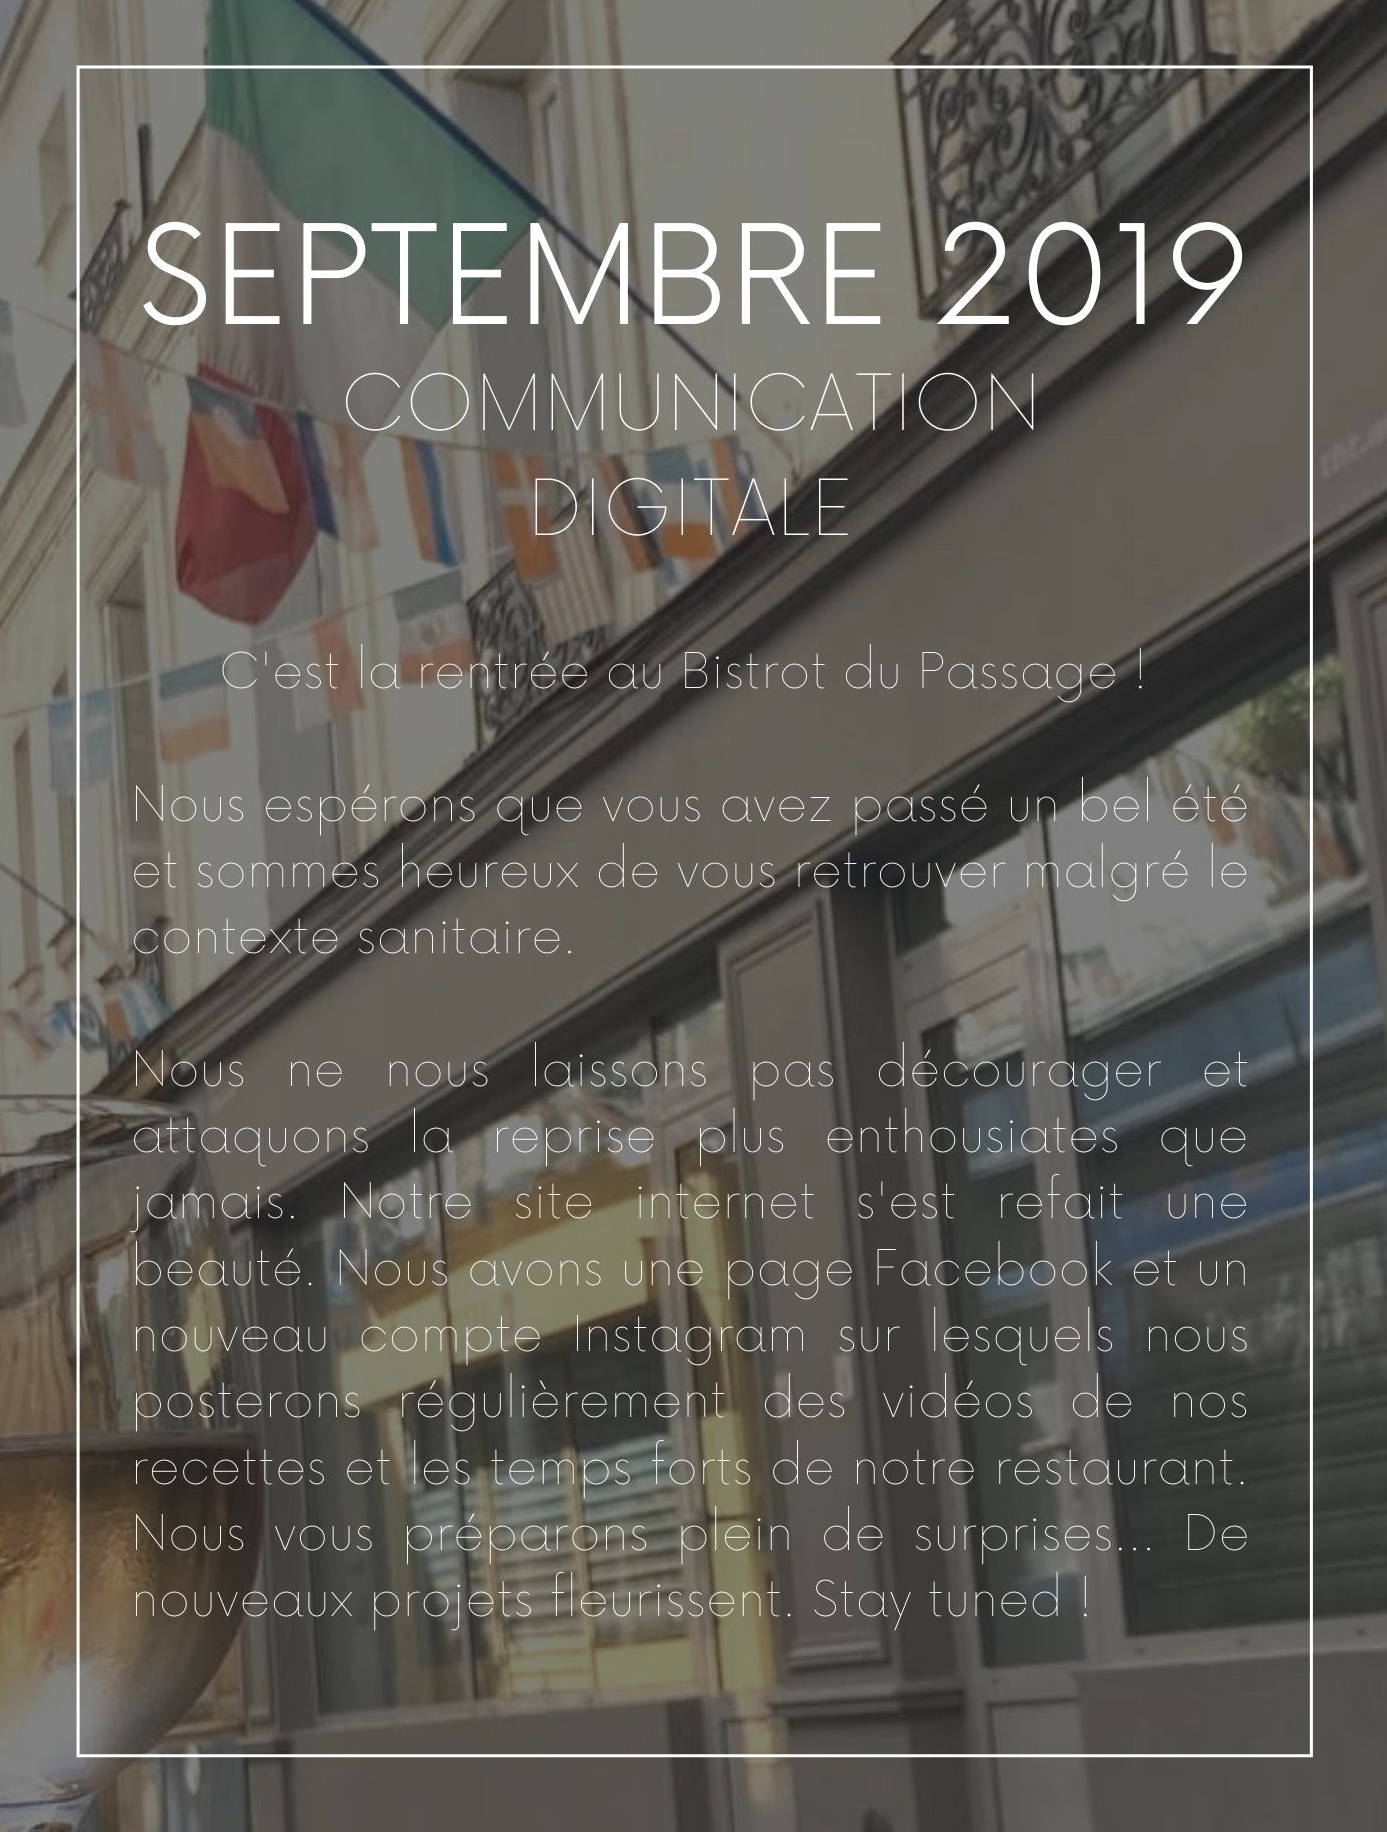 septembre communication digitale Instagram Facebook projet restaurant Paris Batignolles